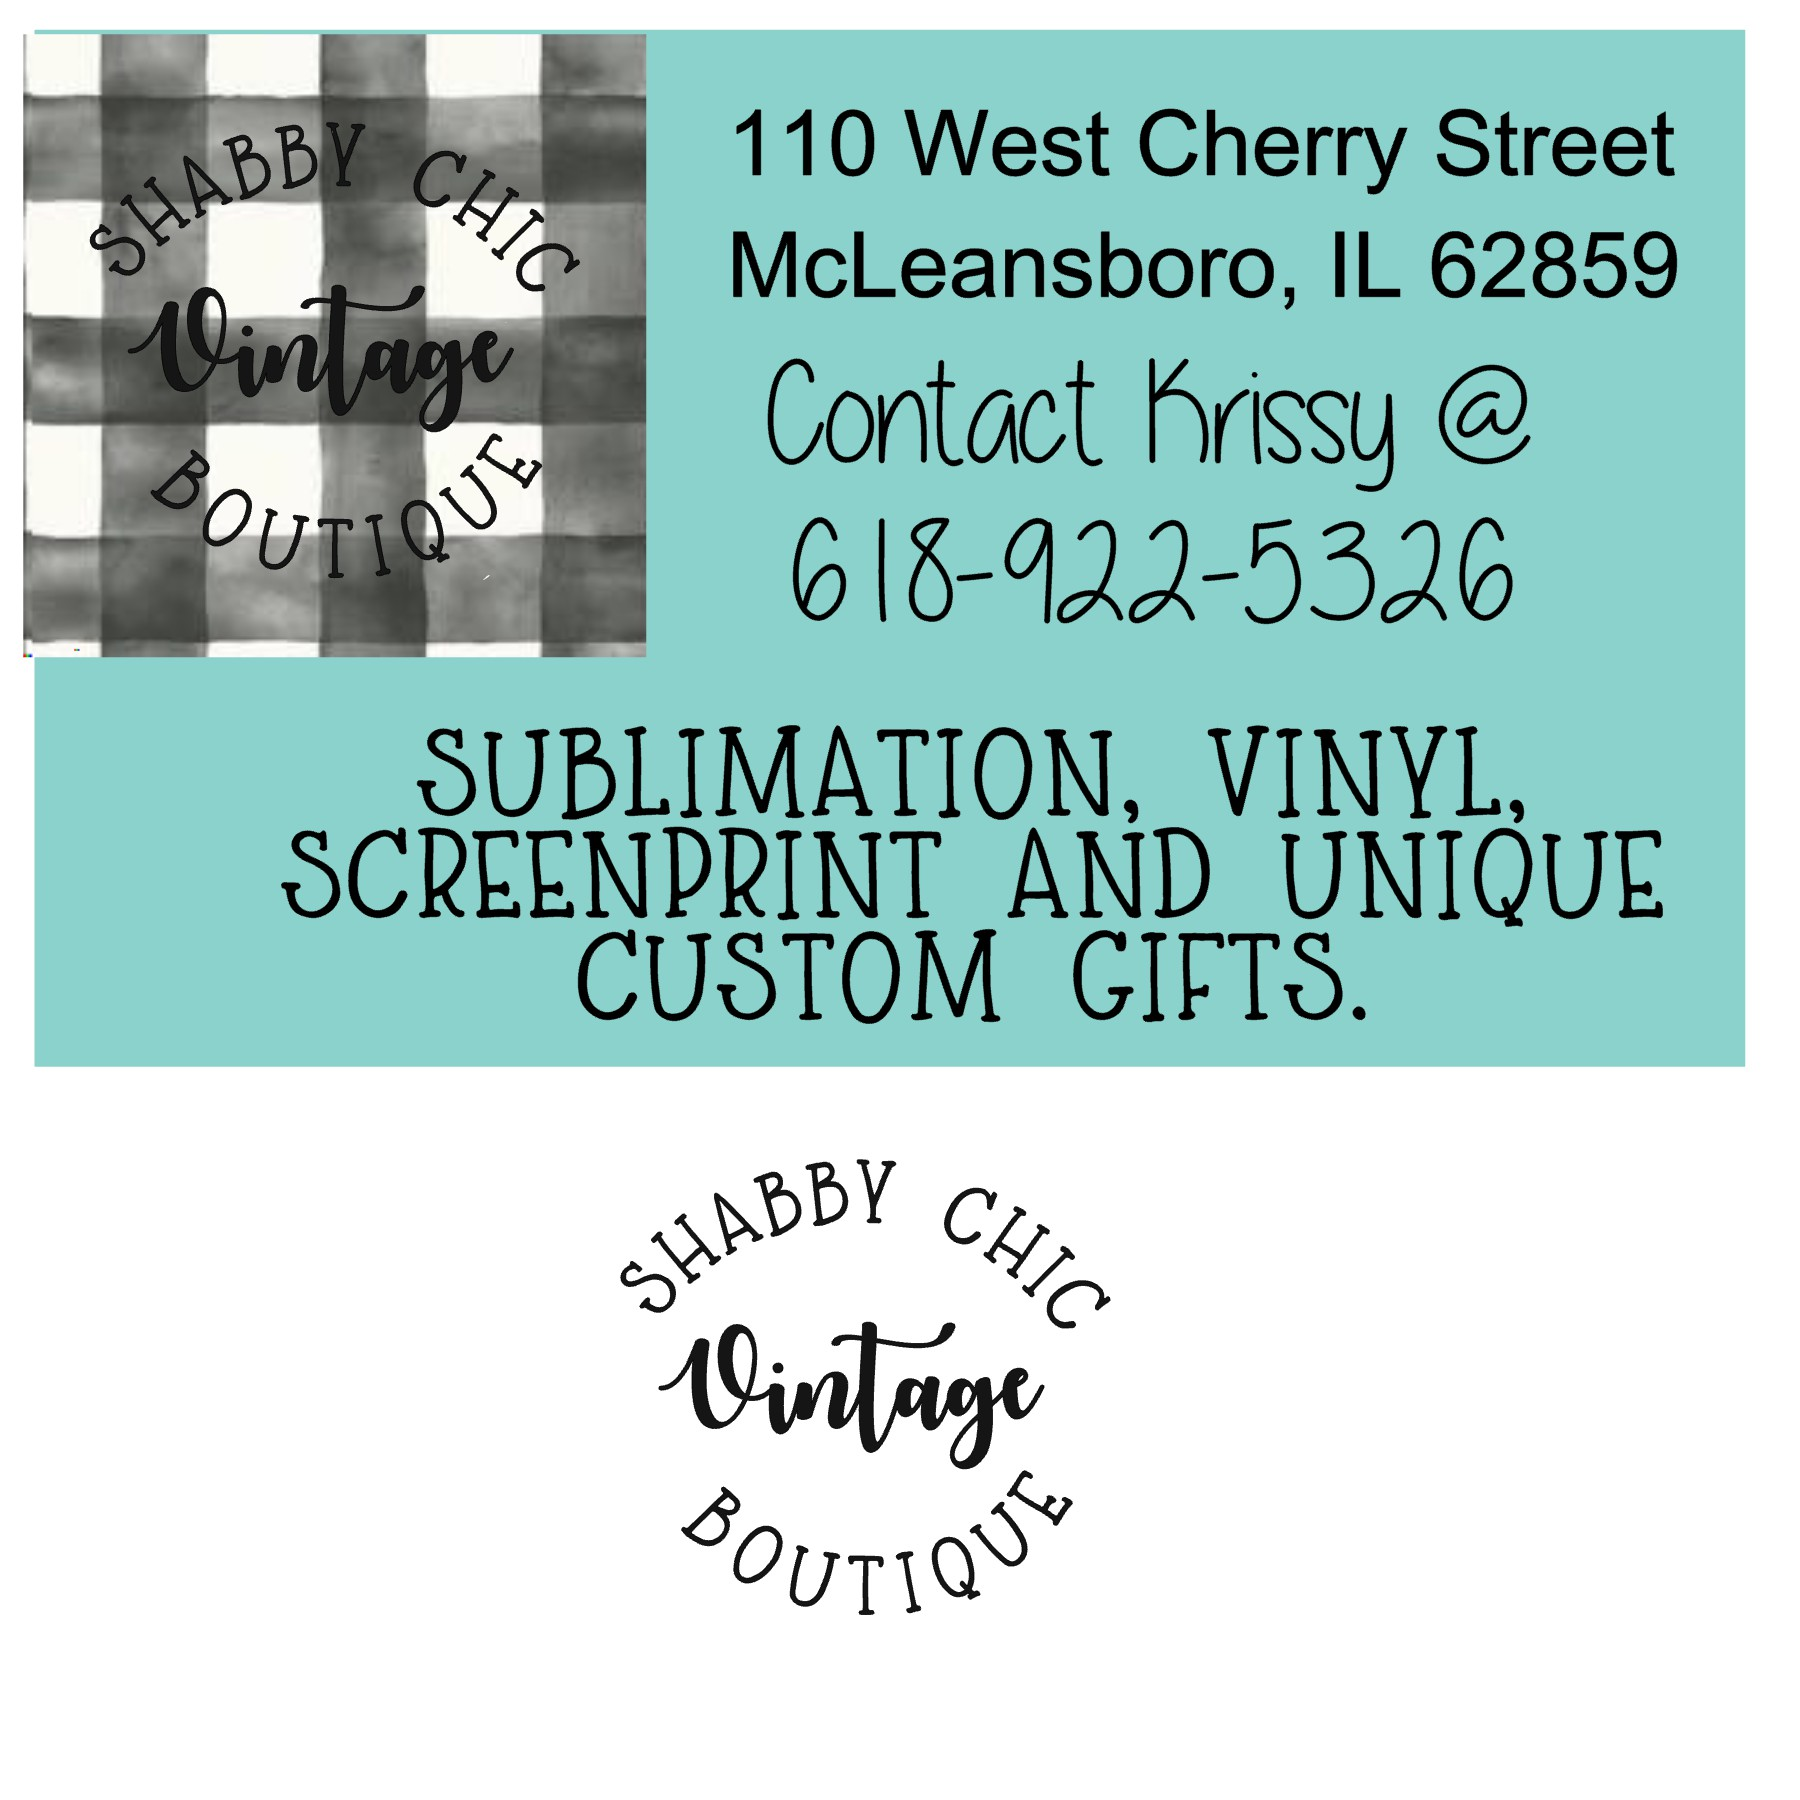 Shabby Chic Vintage Boutique